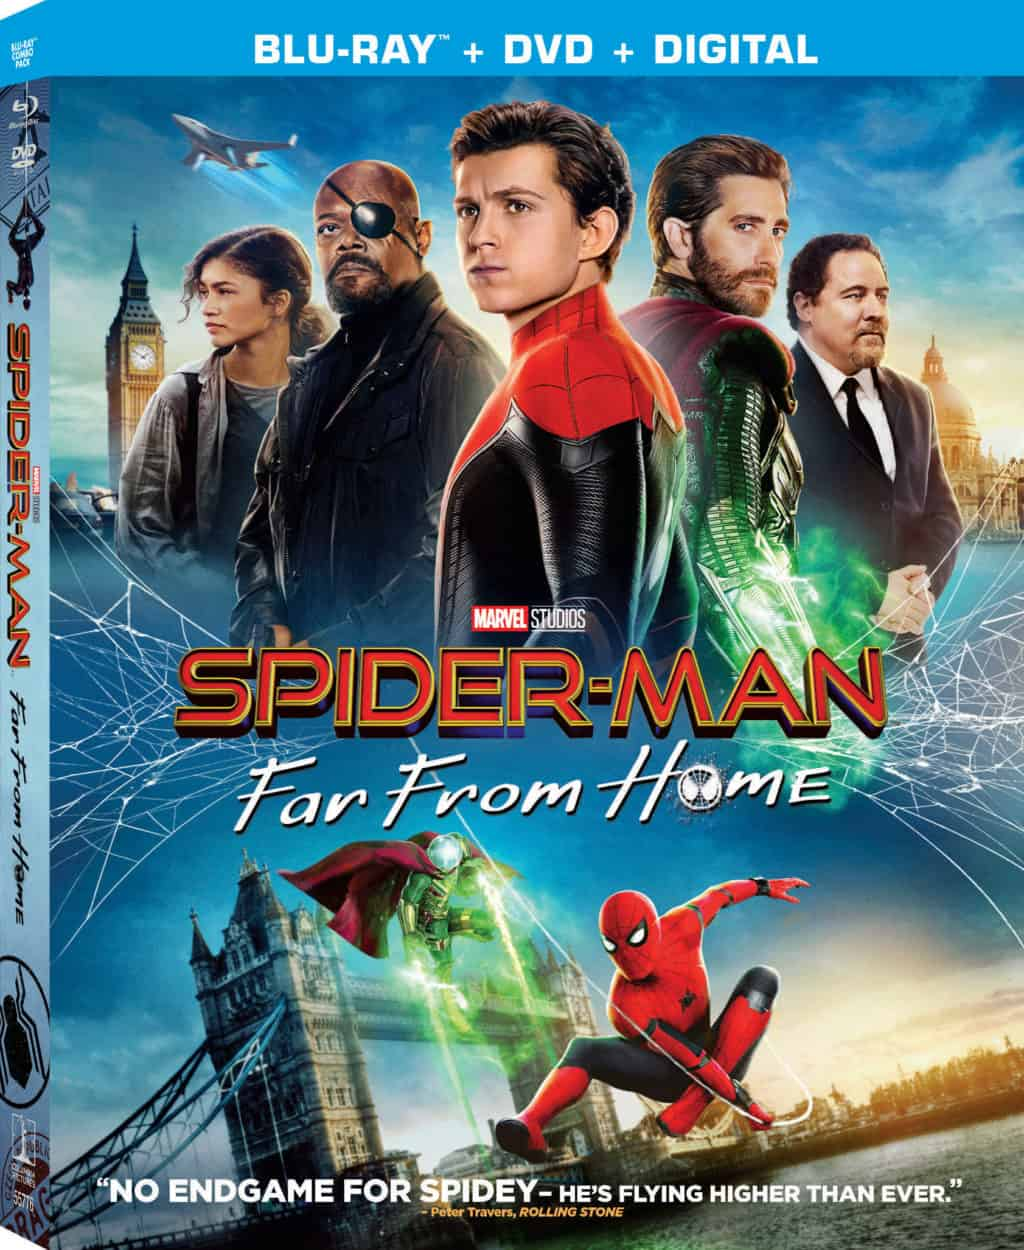 Spider-Man Far From Home At Home Release Information